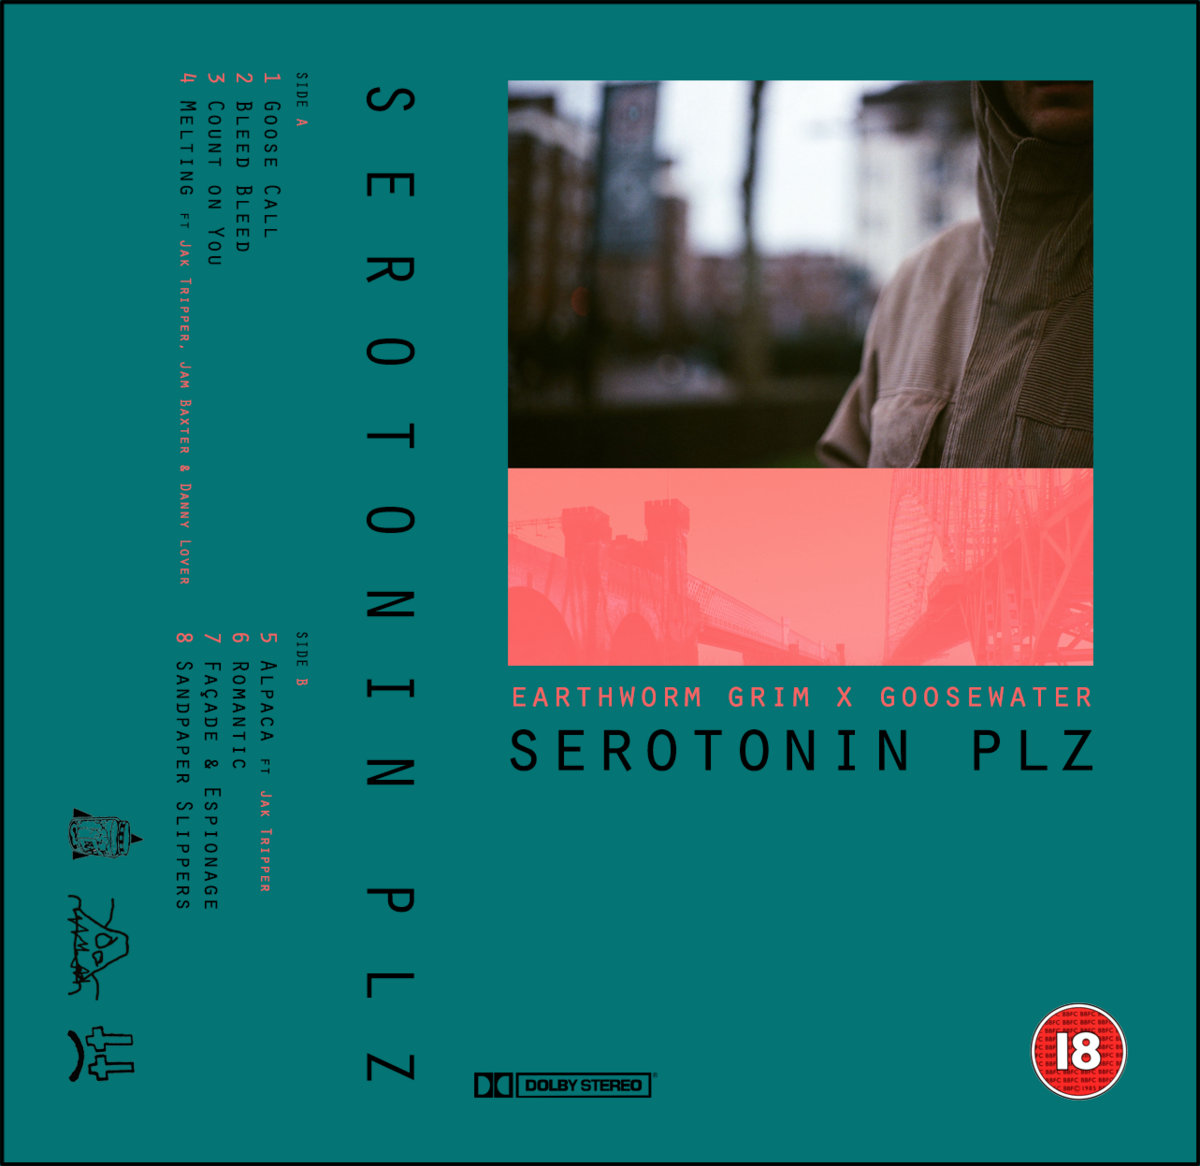 Serotonin Plz Lee Scott Plz5 Smpale Includes Unlimited Streaming Of Via The Free Bandcamp App Plus High Quality Download In Mp3 Flac And More